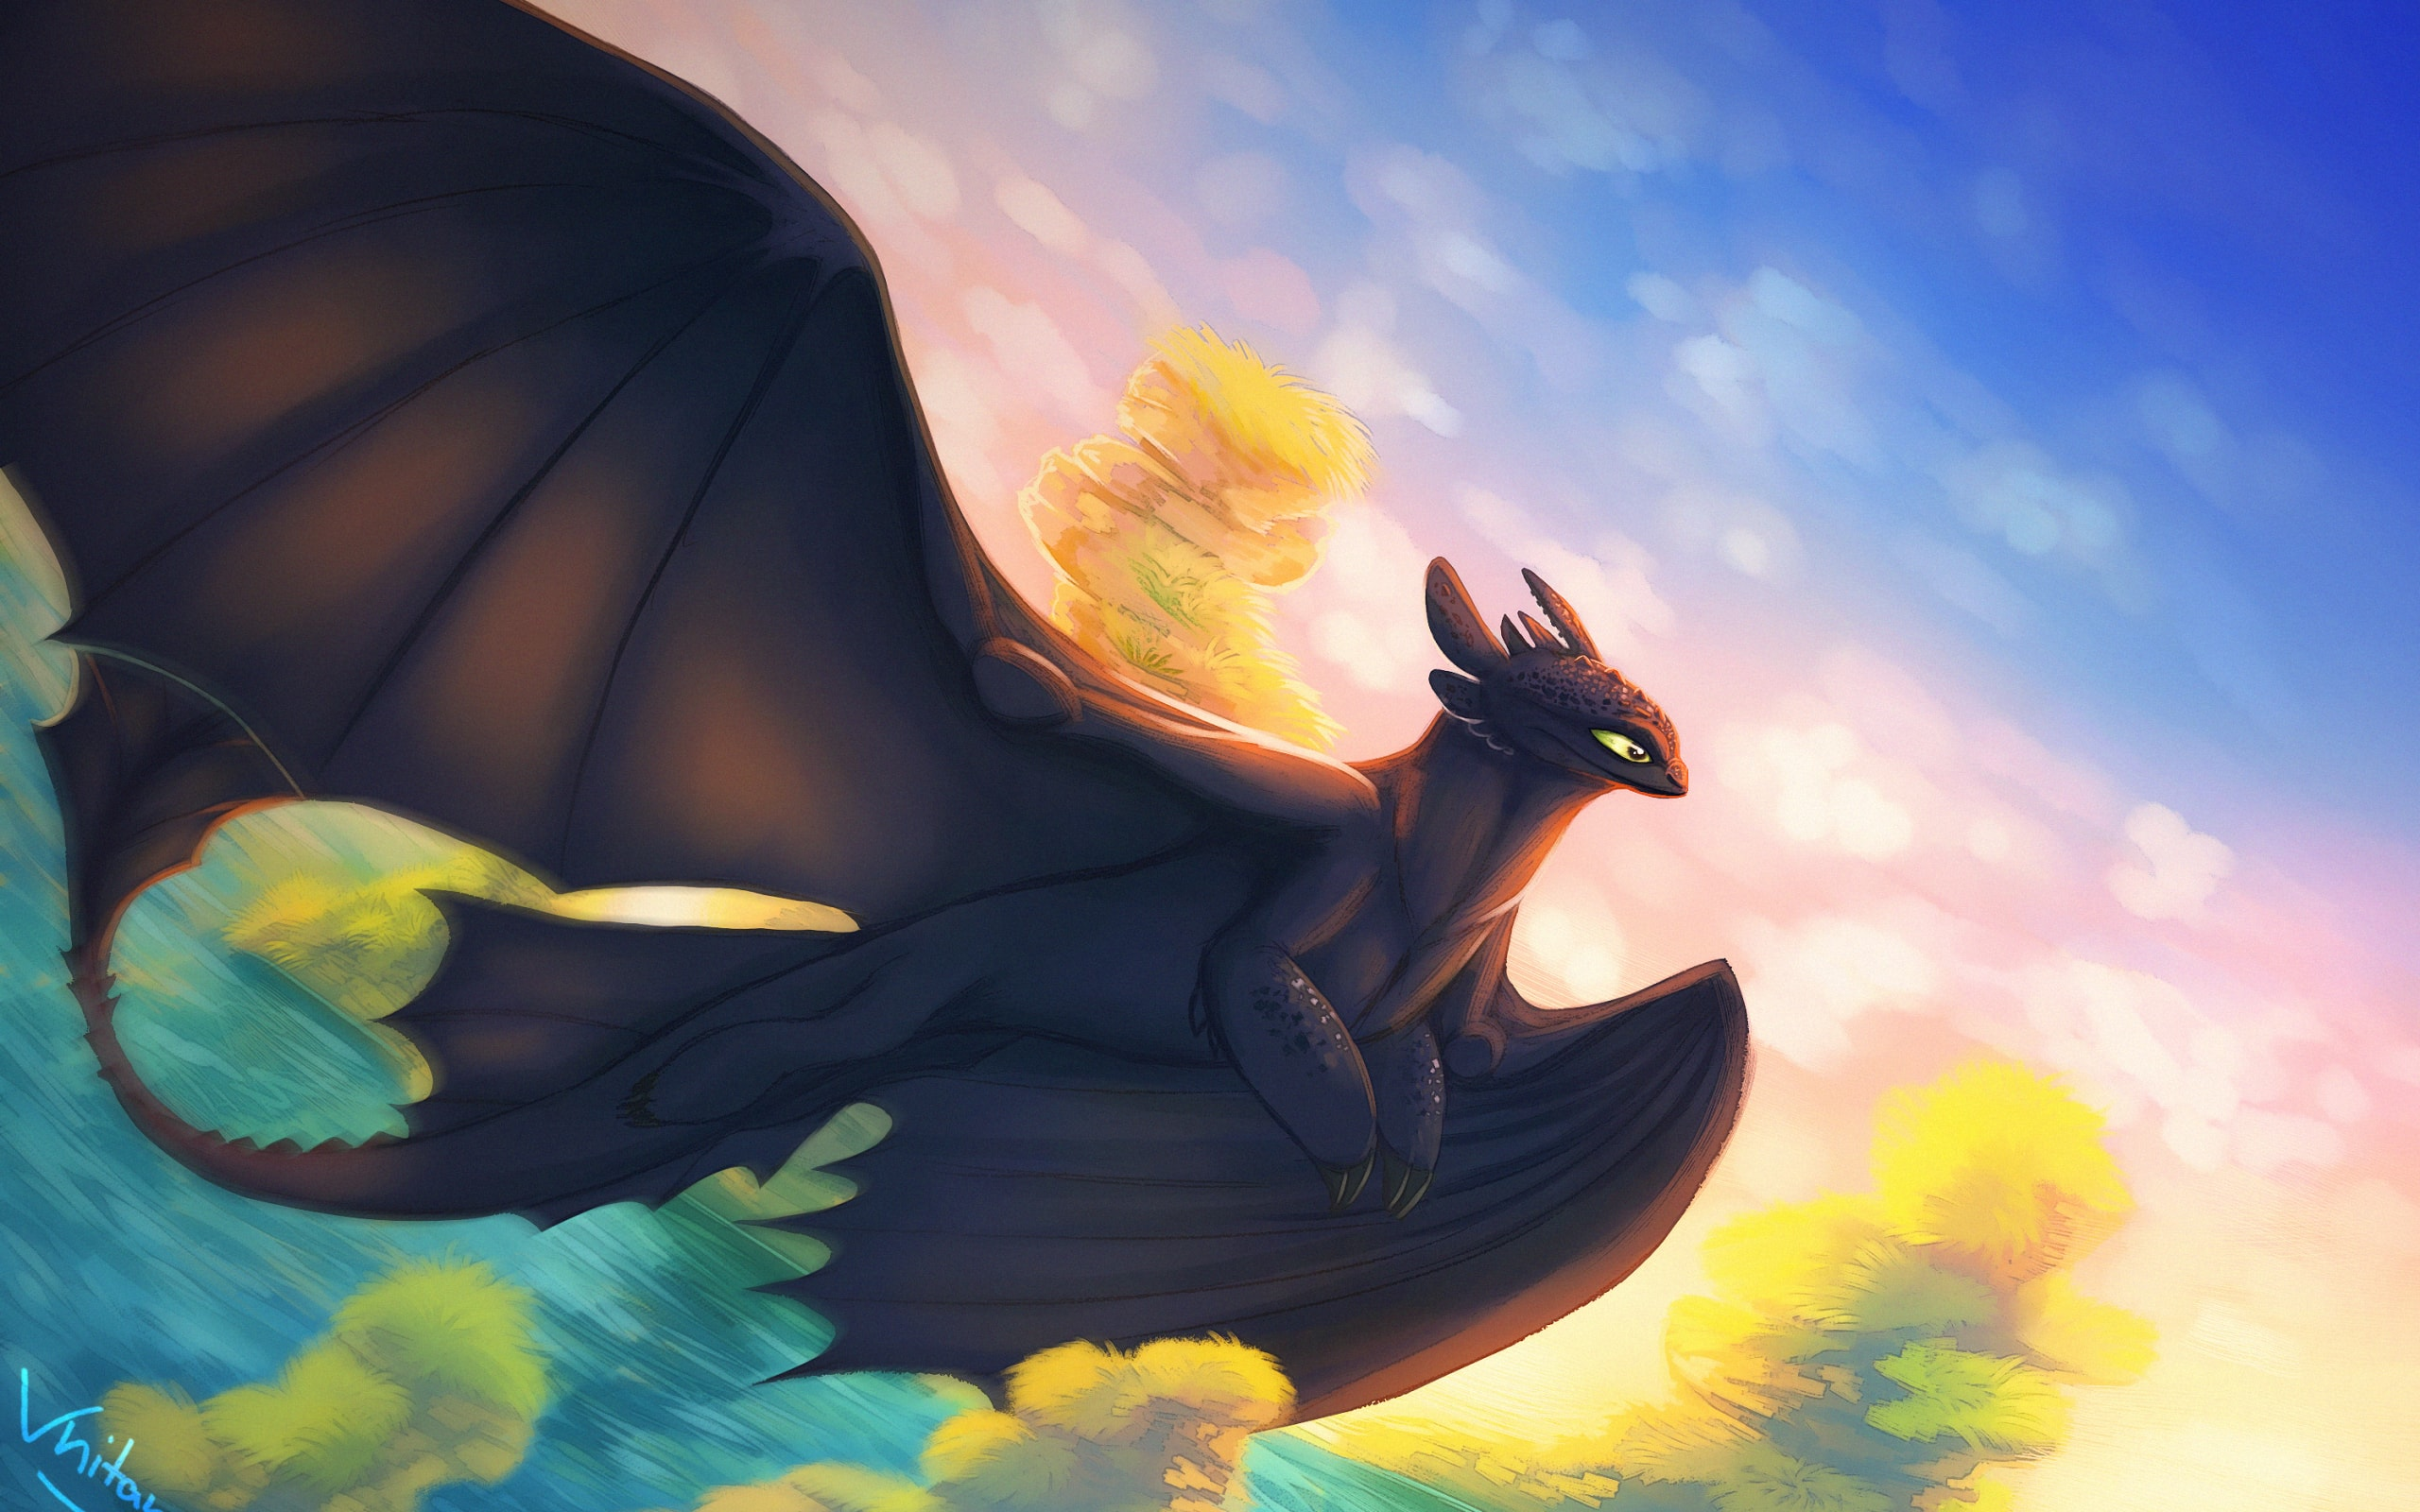 Wallpaper Of Art How To Train Your Dragon The Hidden World